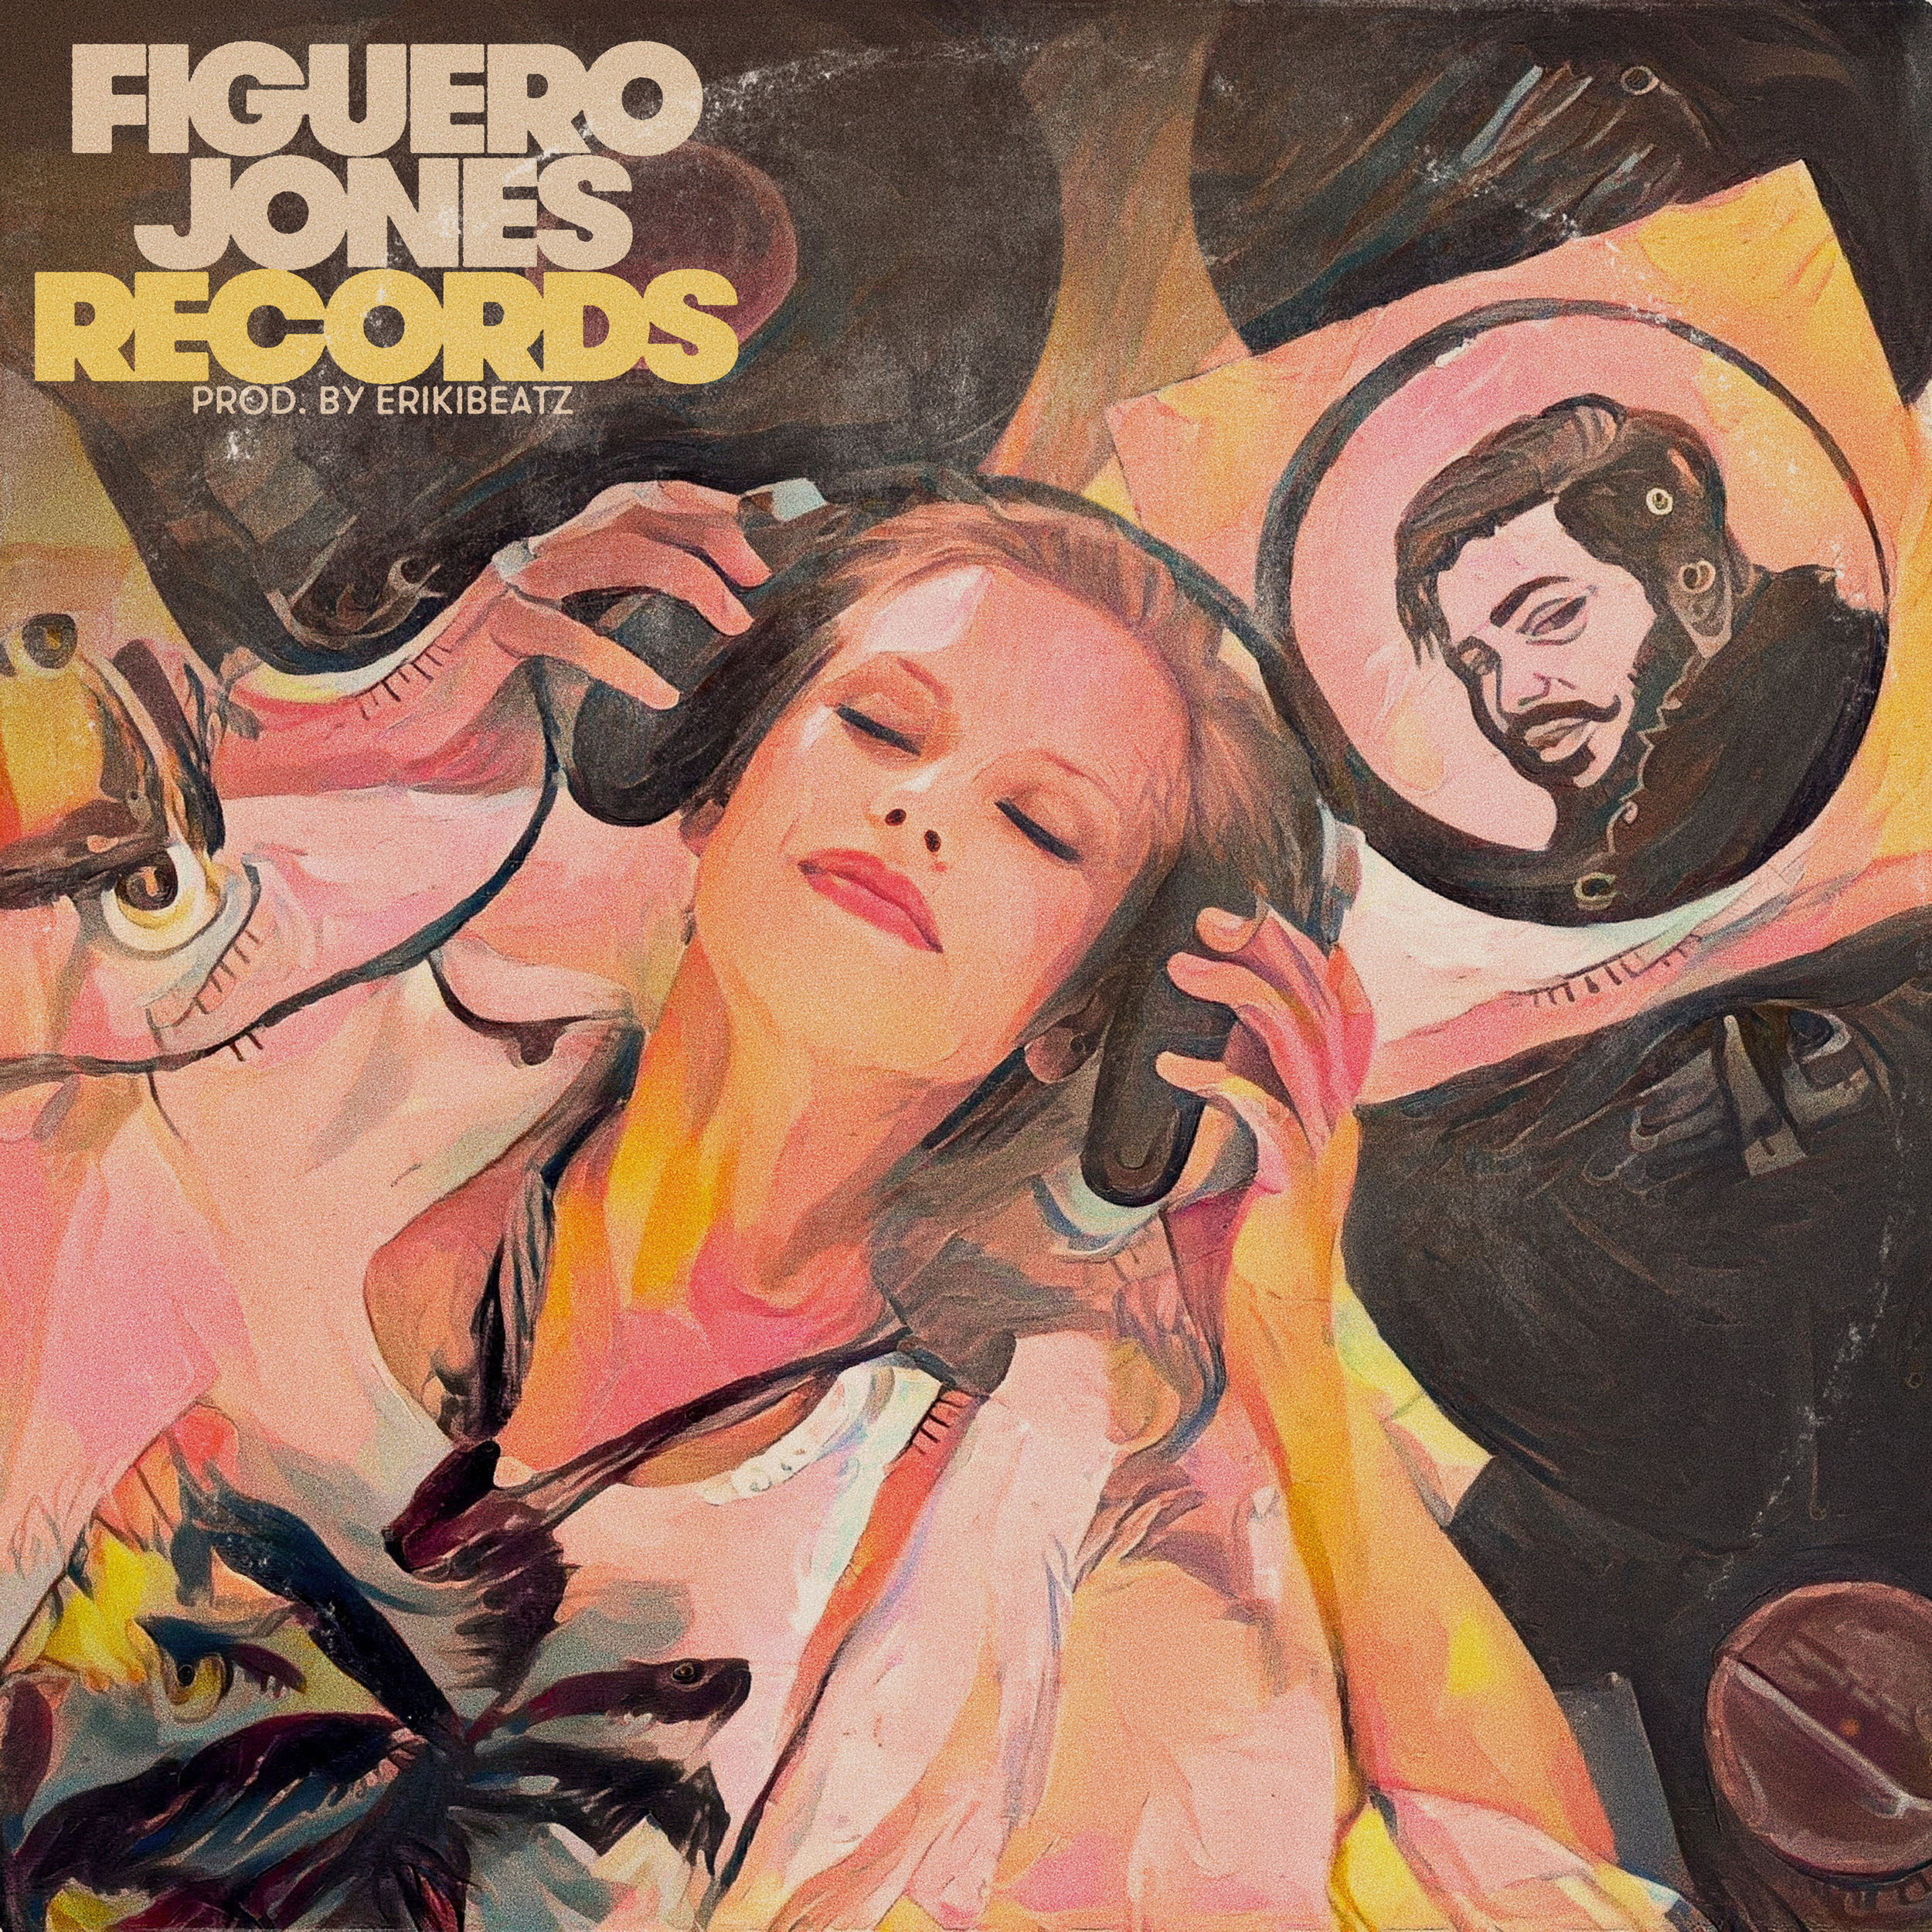 WVS042 - Figuero Jones - Records - Artwork.jpg